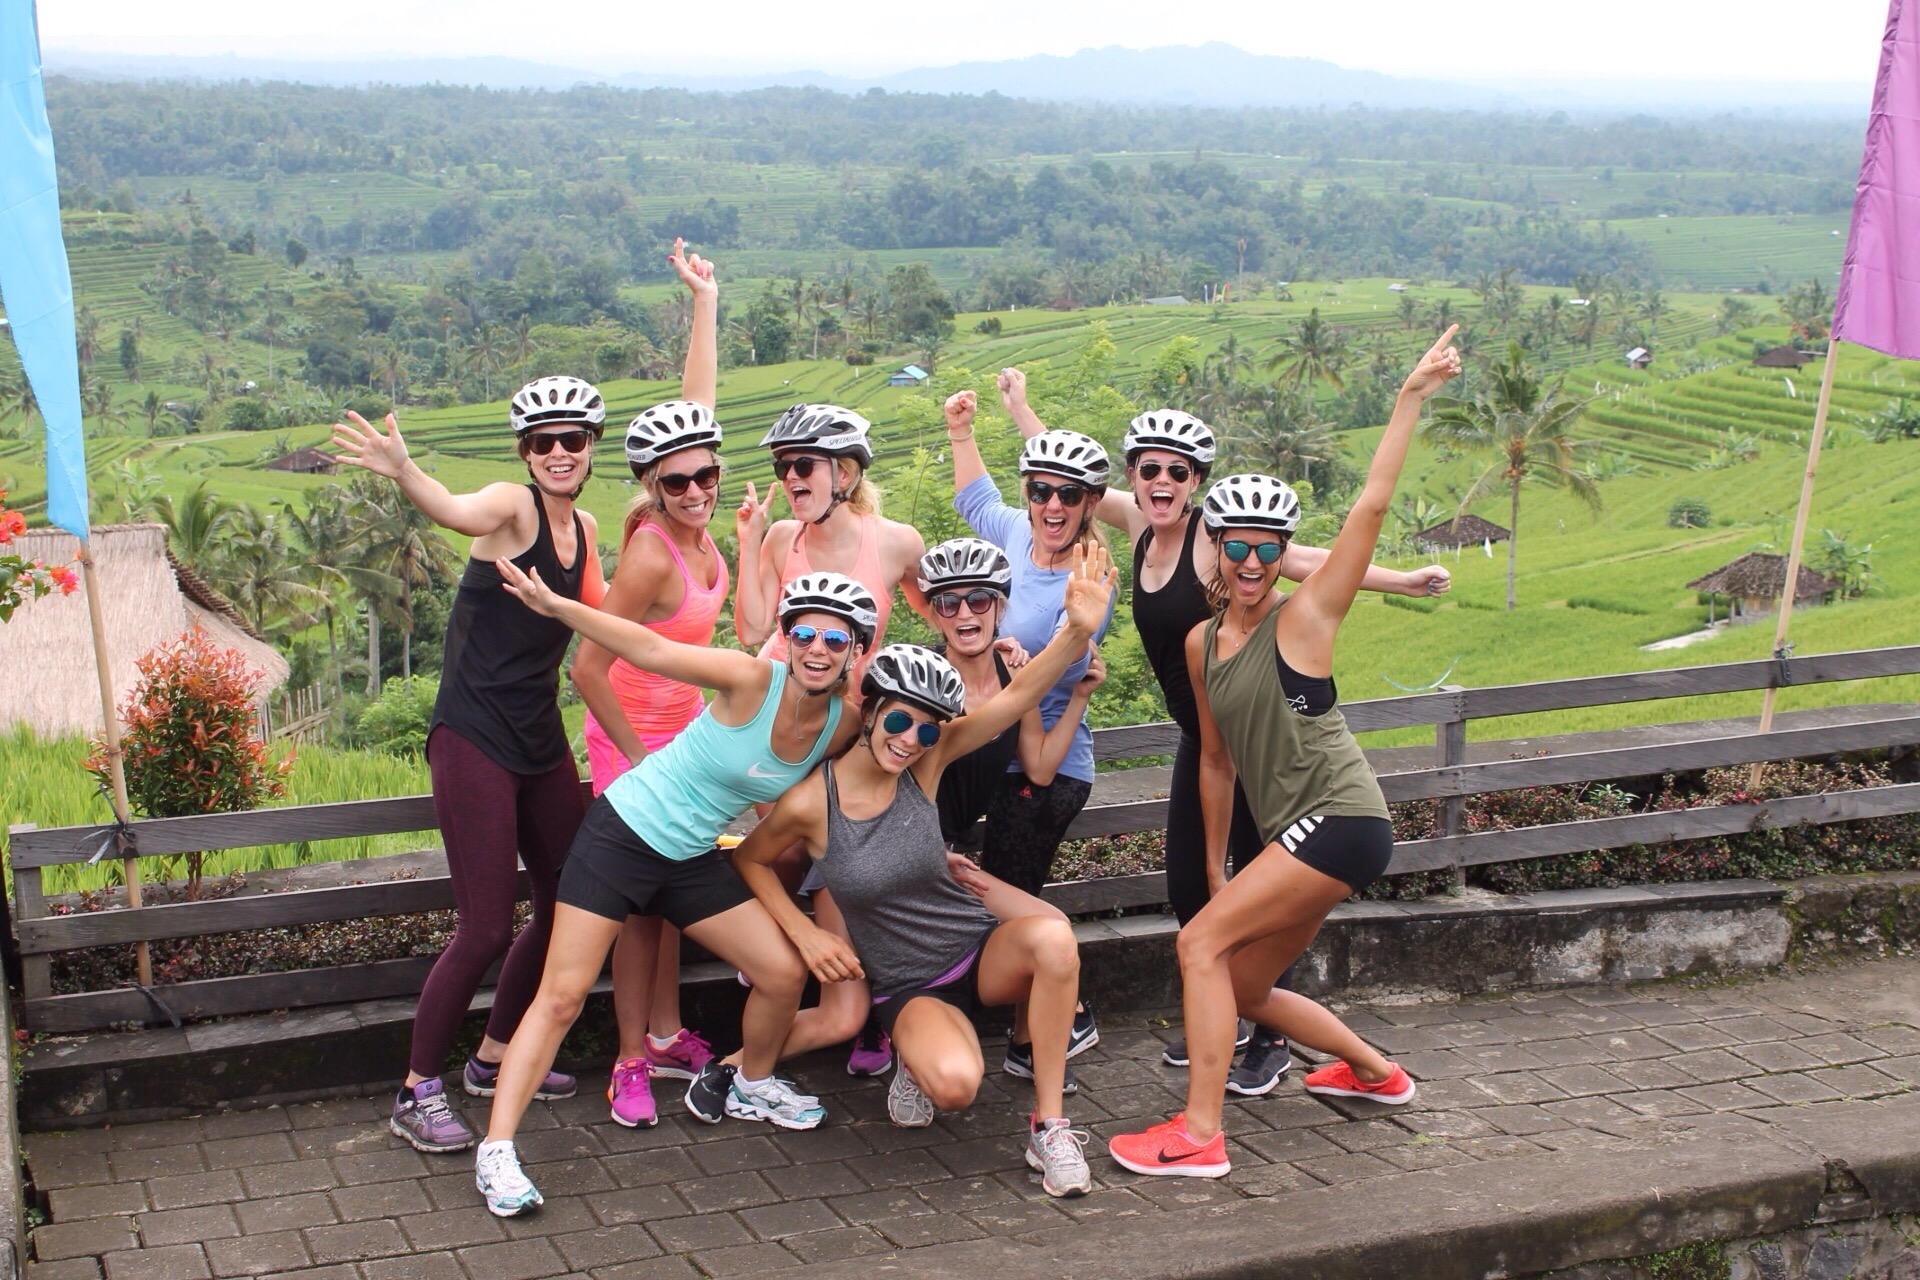 mountainbike tour i love health retreat bali, bali bike park